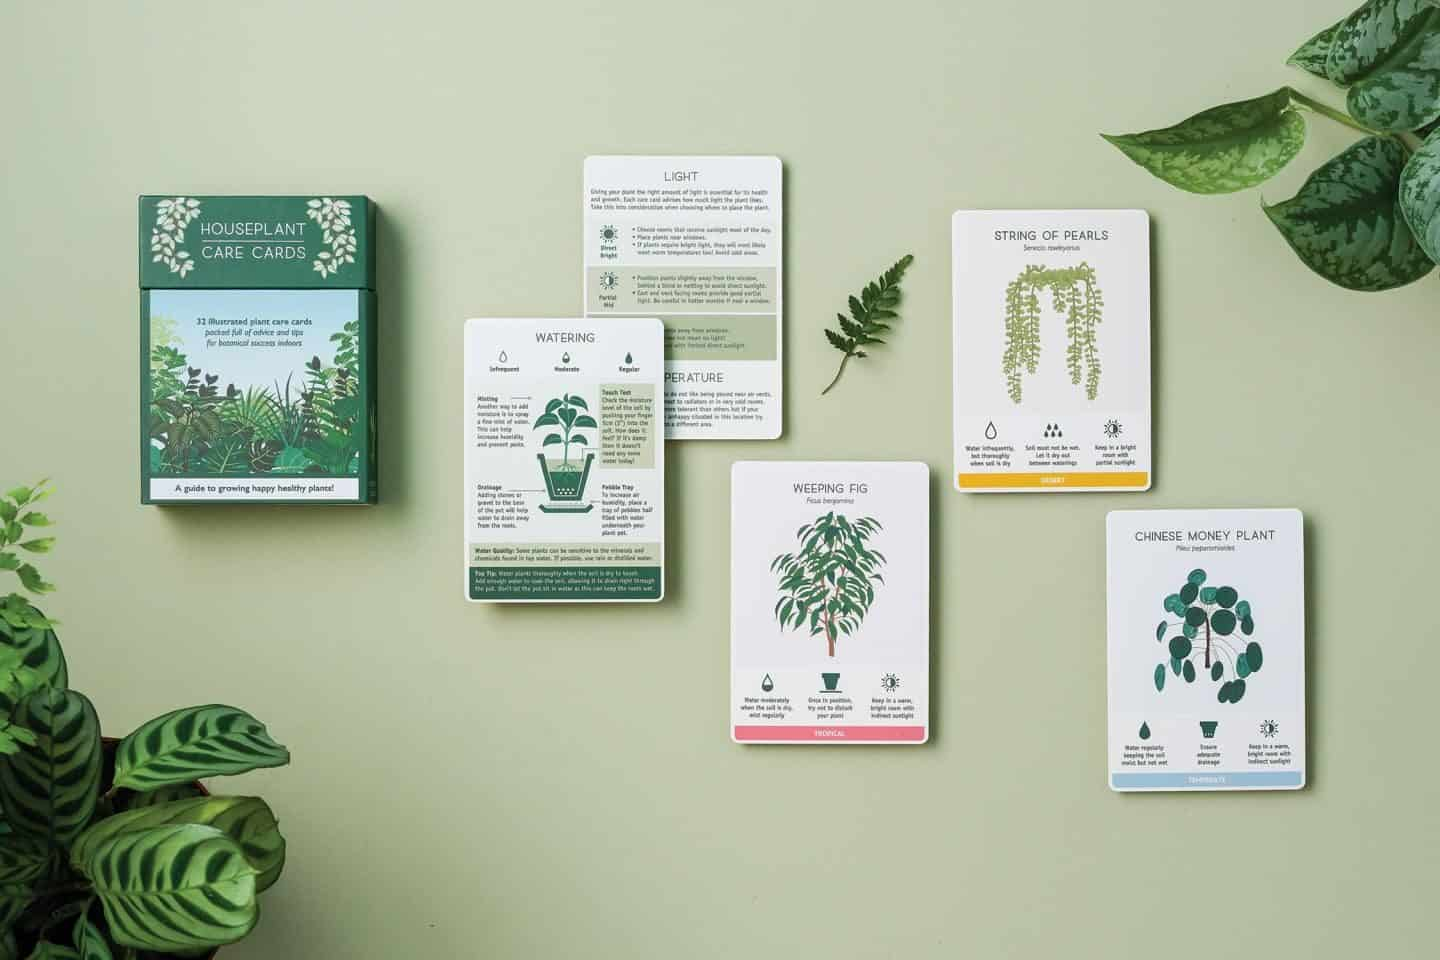 Gifts for plant lovers - these plant care cards from another studio offer tips and advice for caring for your plants